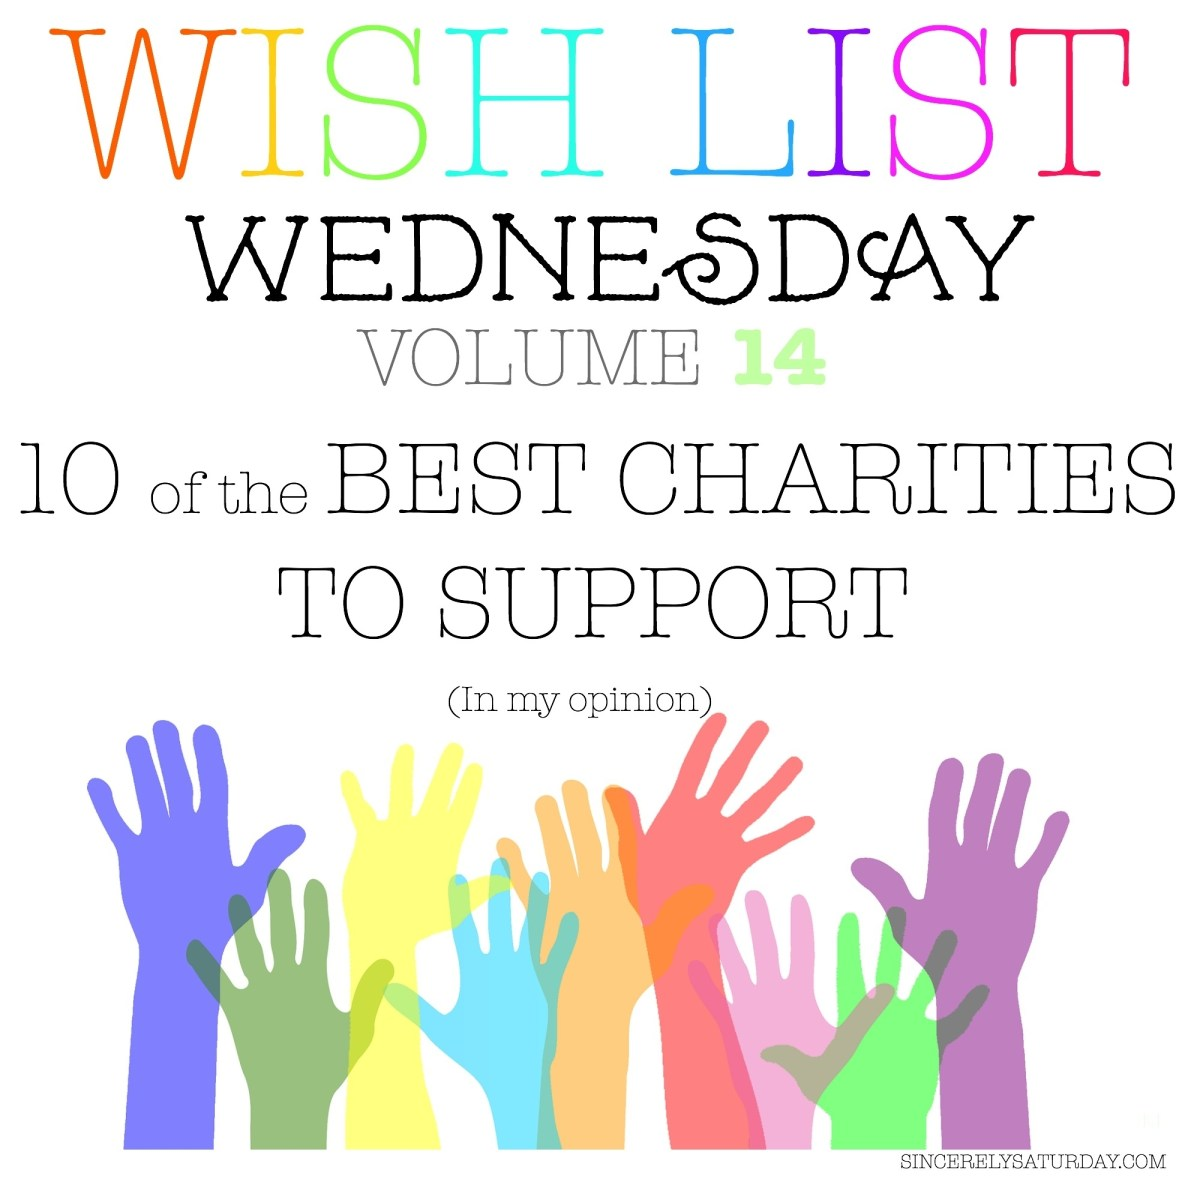 10 OF THE BEST CHARITIES TO SUPPORT